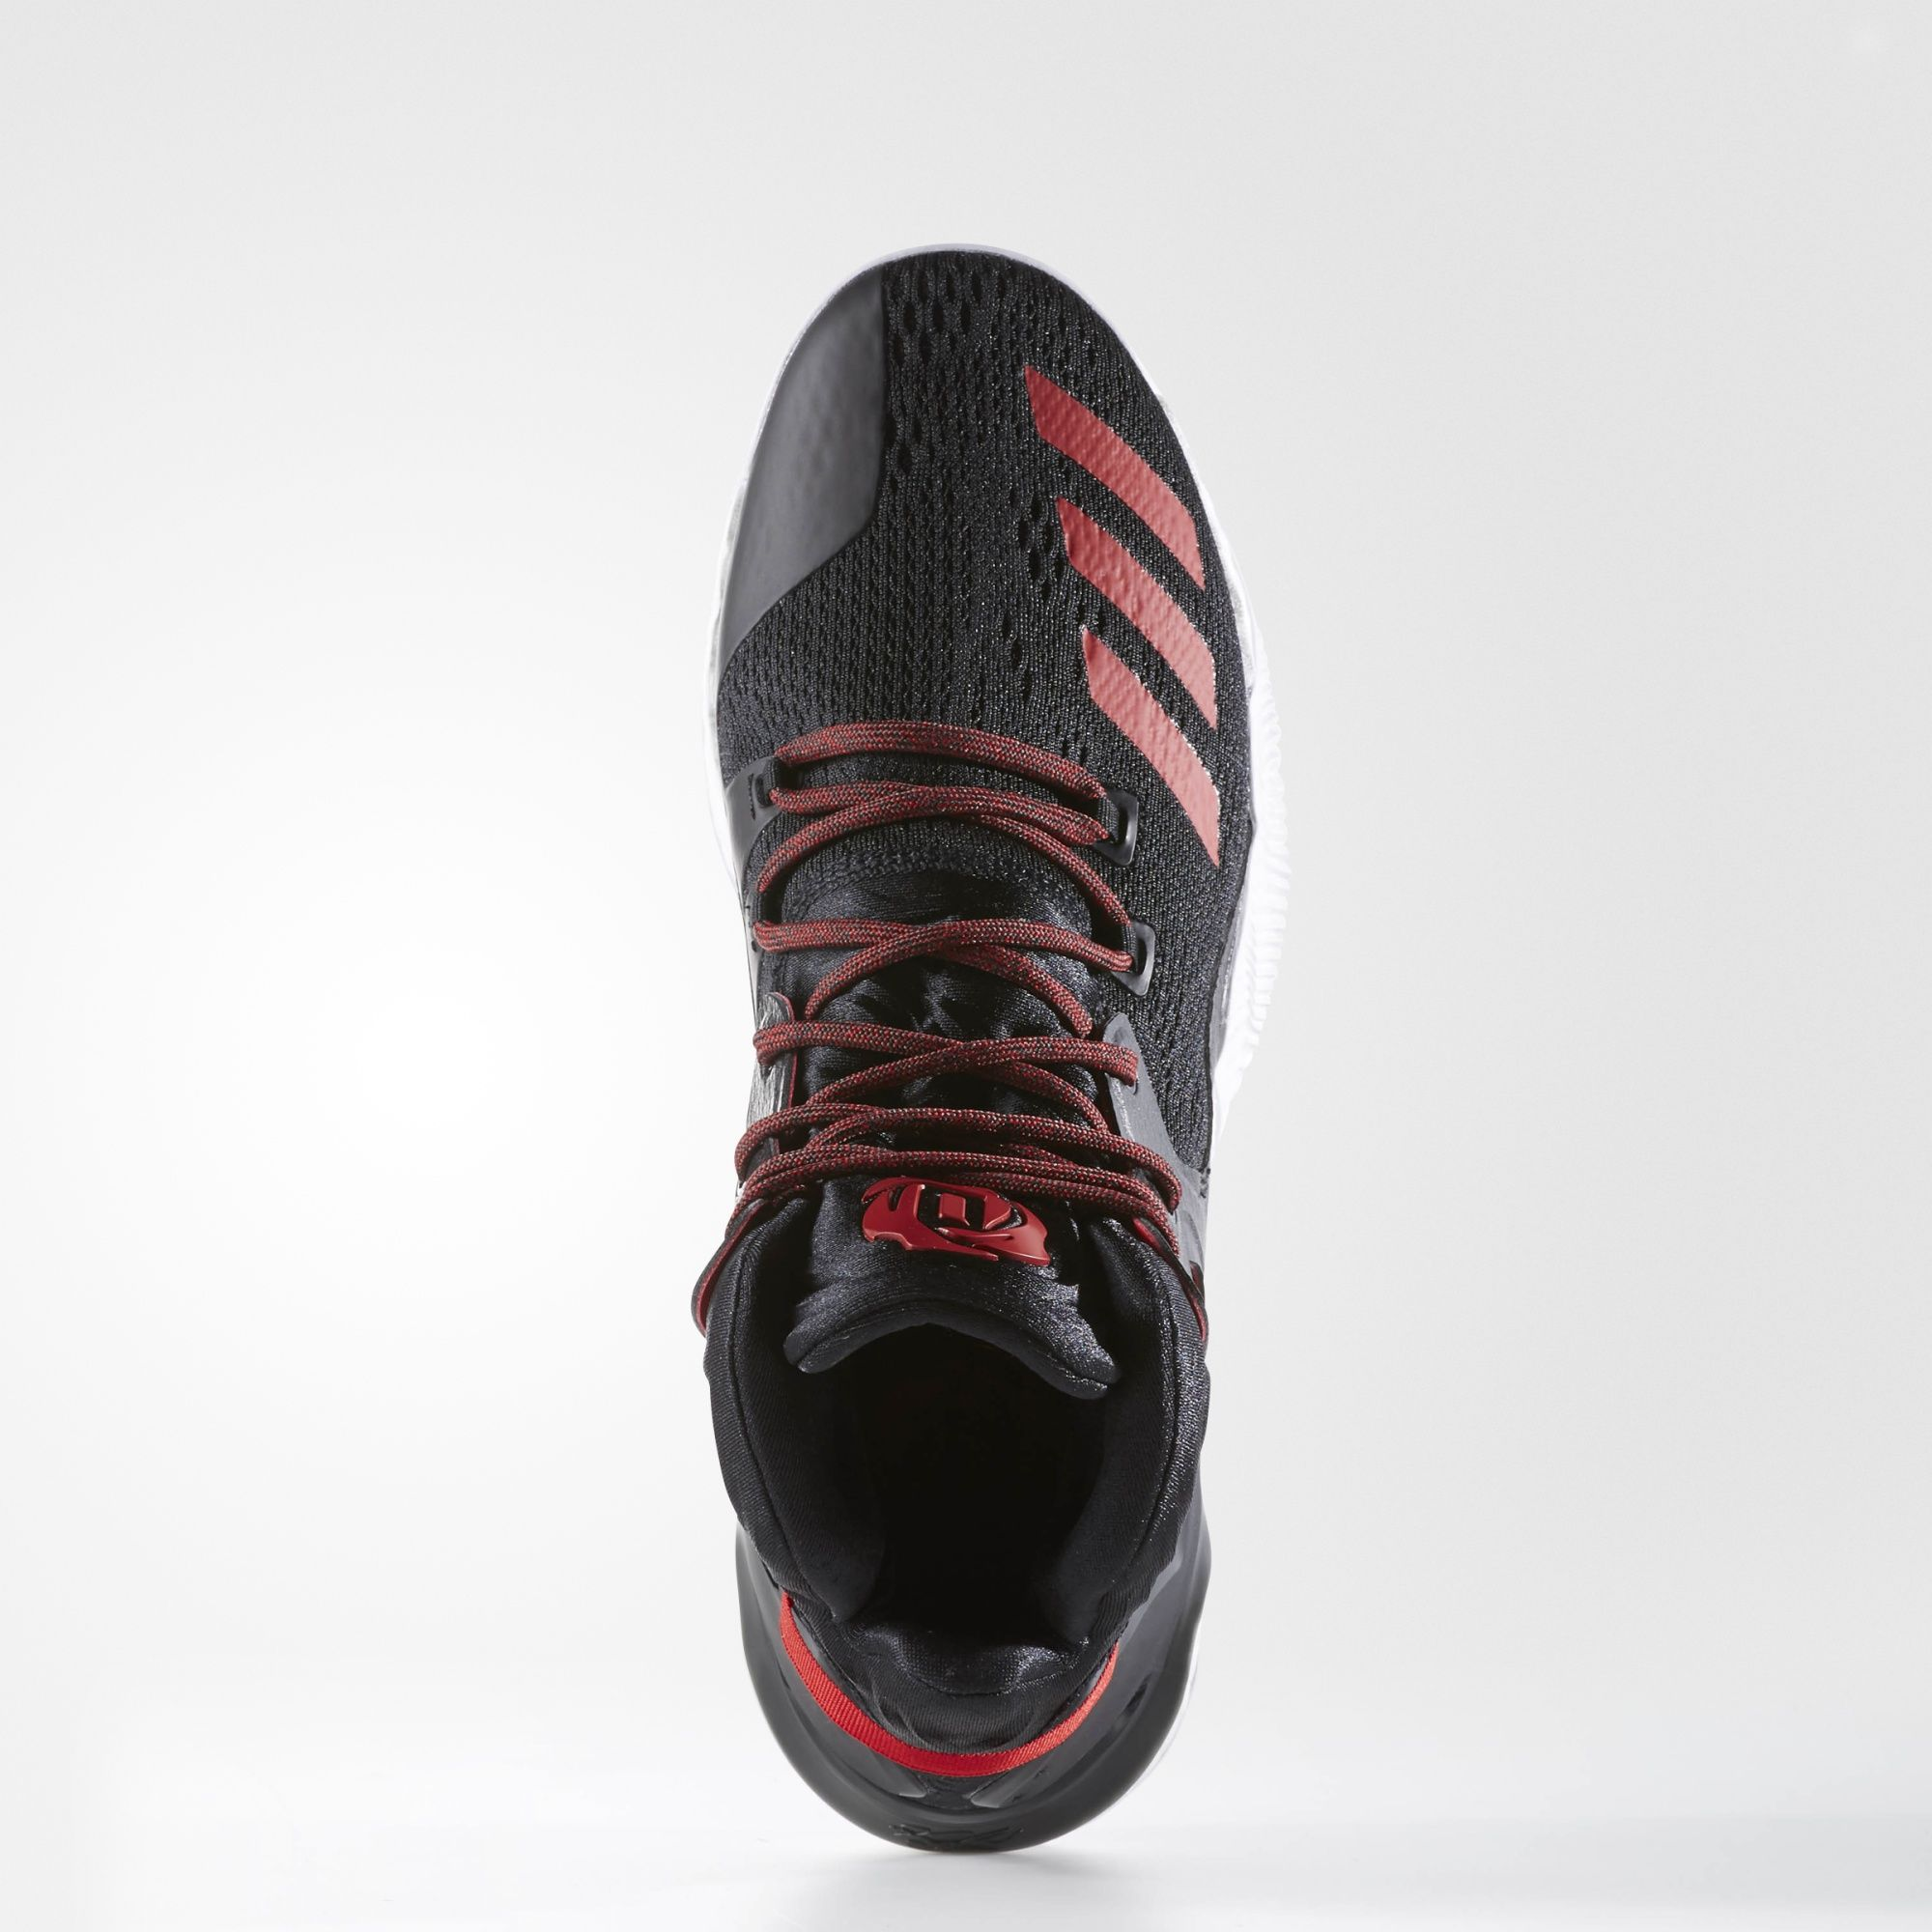 Adidas Rose 7 Black/Scarlet